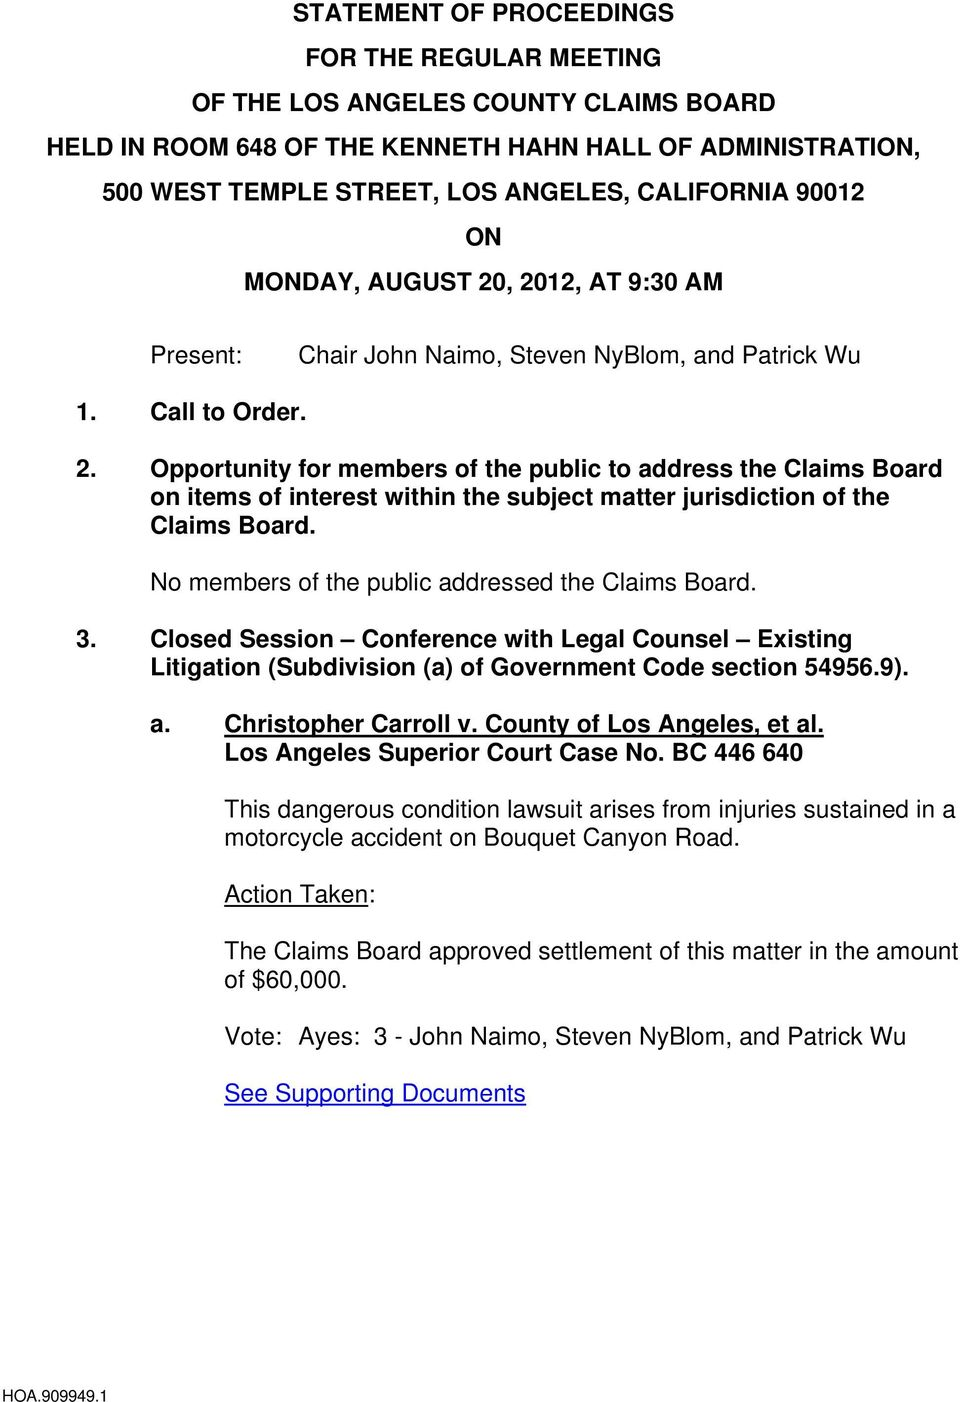 No members of the public addressed the Claims Board. 3. Closed Session Conference with Legal Counsel Existing Litigation (Subdivision (a) of Government Code section 54956.9). a. Christopher Carroll v.